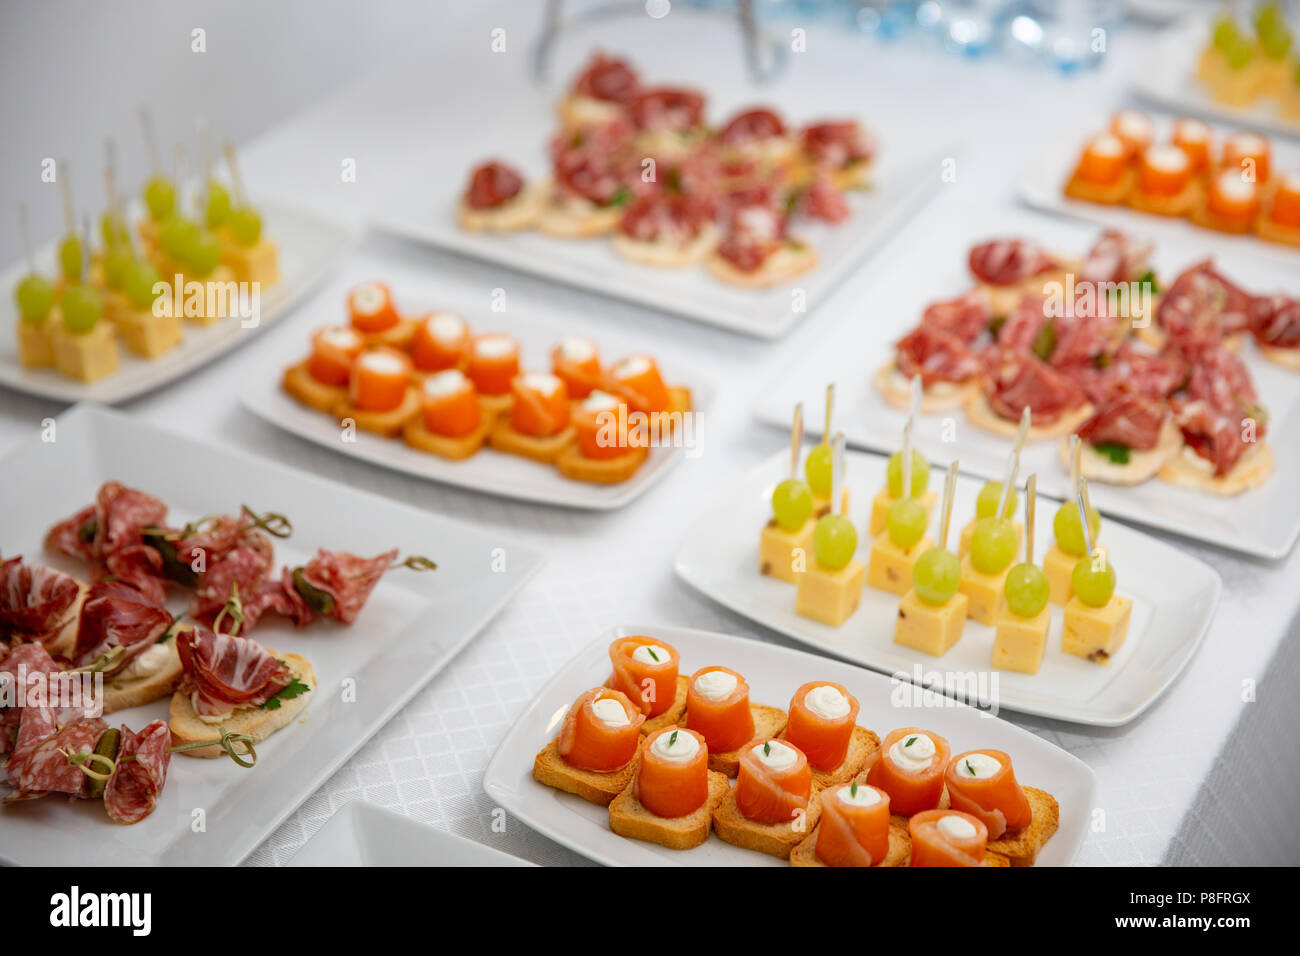 the buffet at the reception. Assortment of canapes. Banquet service. catering food, snacks with salmon - Stock Image